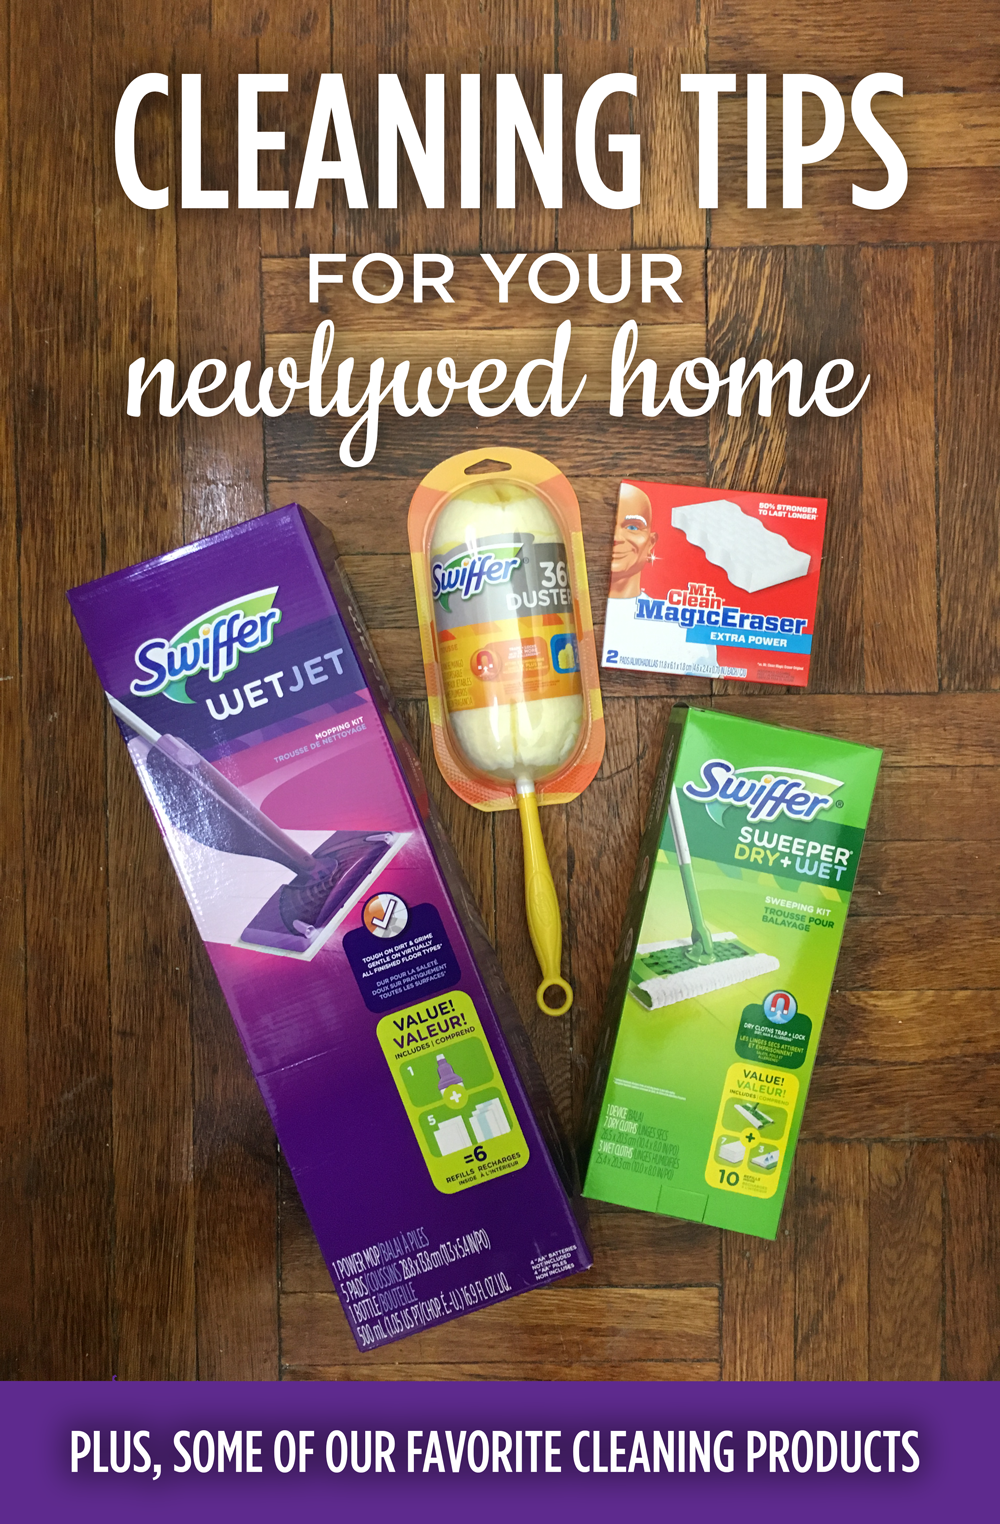 cleaning tips for your newlywed home